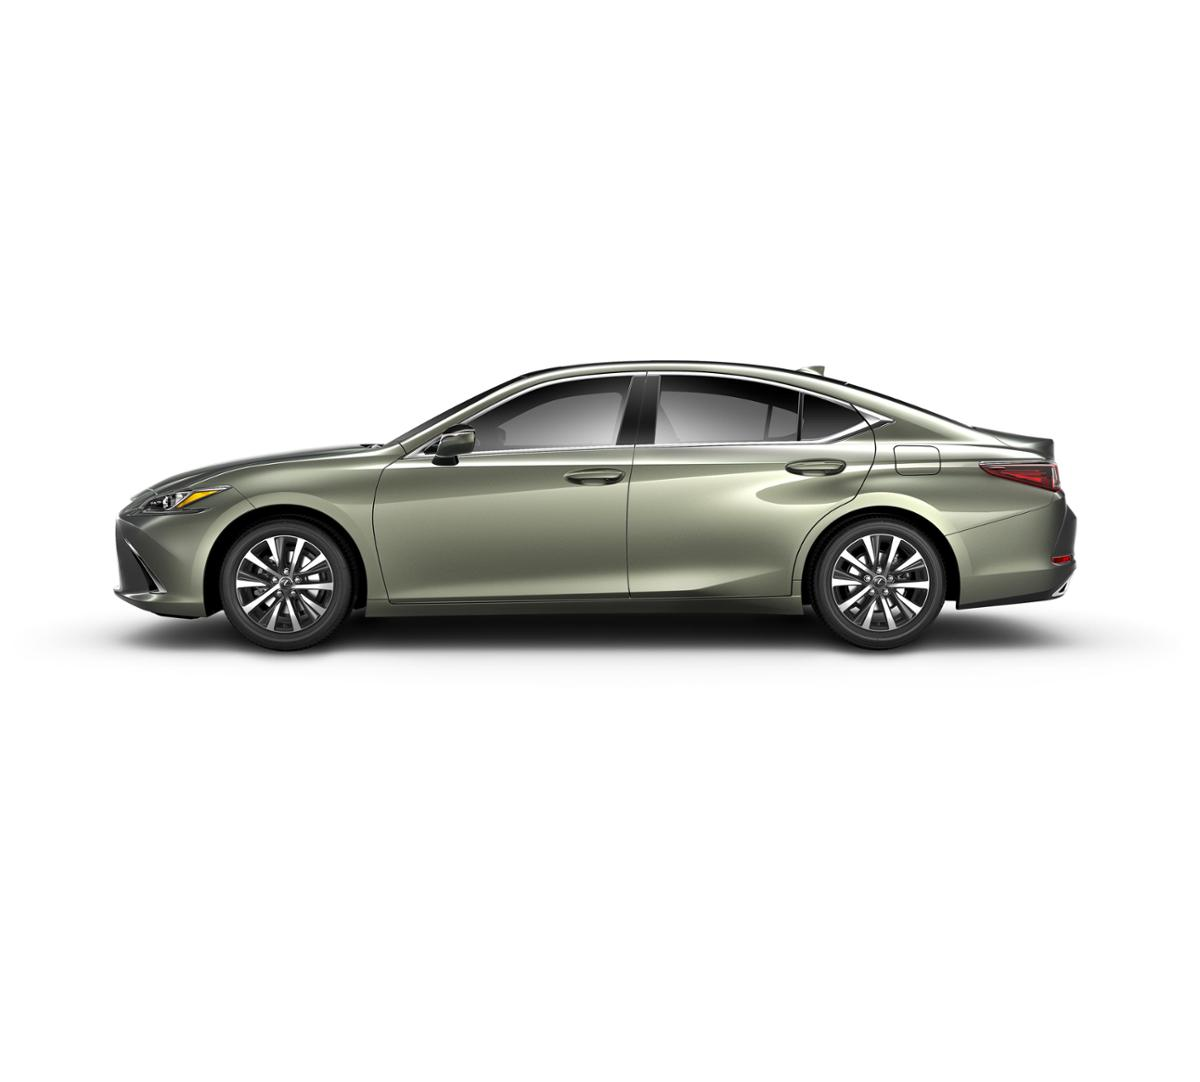 New Sunlit Green 2019 Lexus ES 350 In Tampa, FL